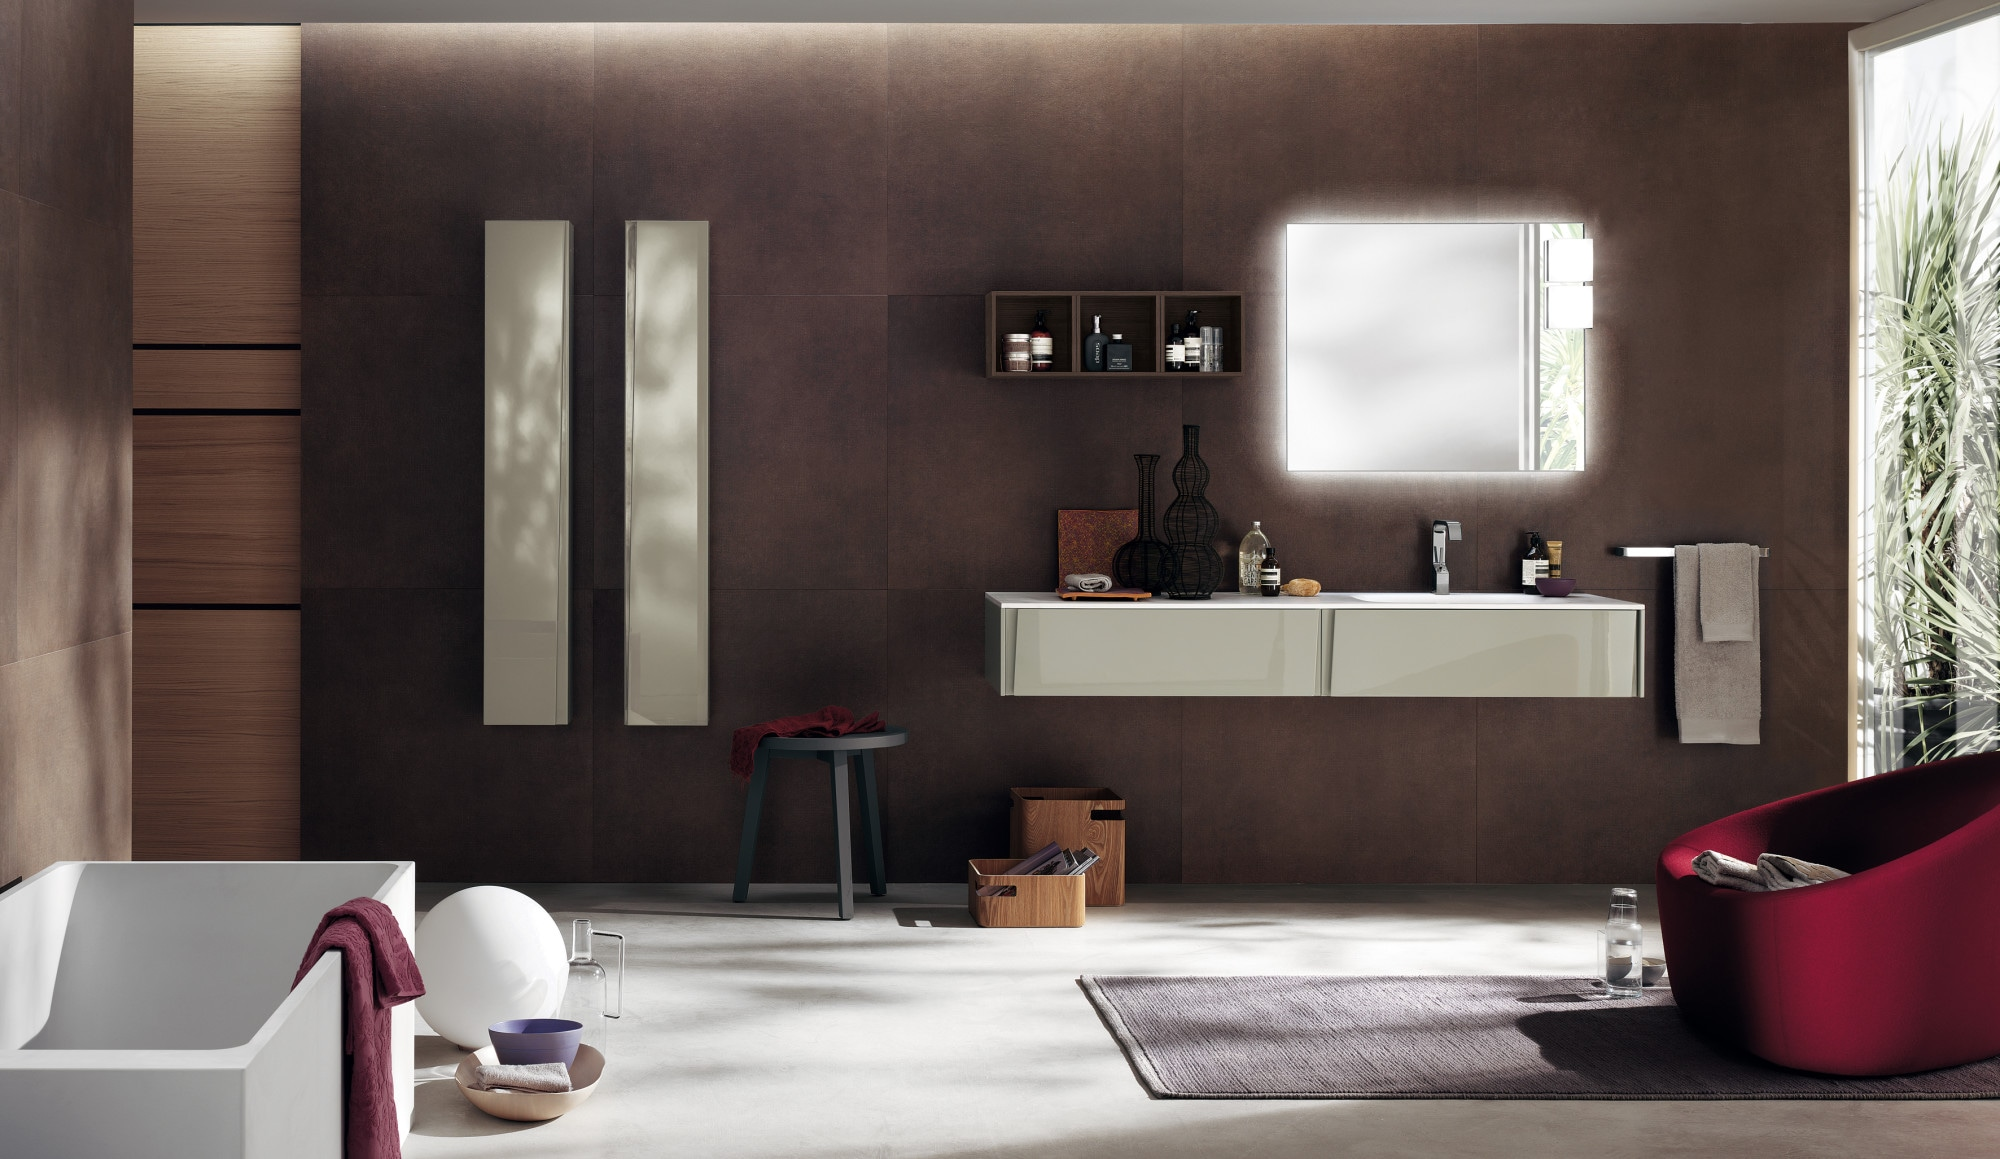 The archetype of a new way of designing and furnishing the bathroom